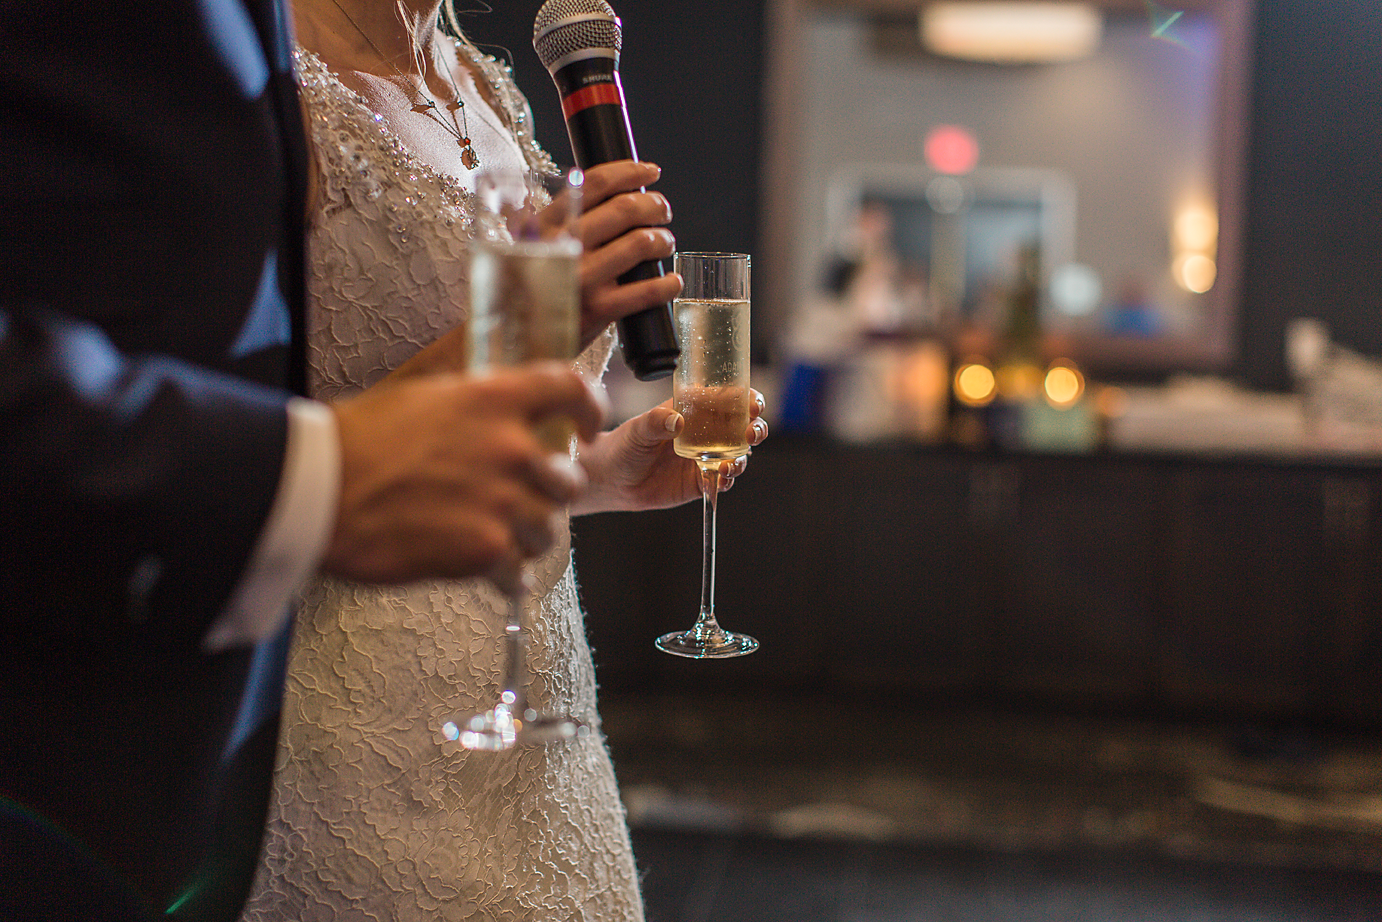 Dallas Wedding Photographer Greenville SC Embassy Suites Riverfront scottish wedding bride and groom toast champagne glasses kate marie portraiture.png